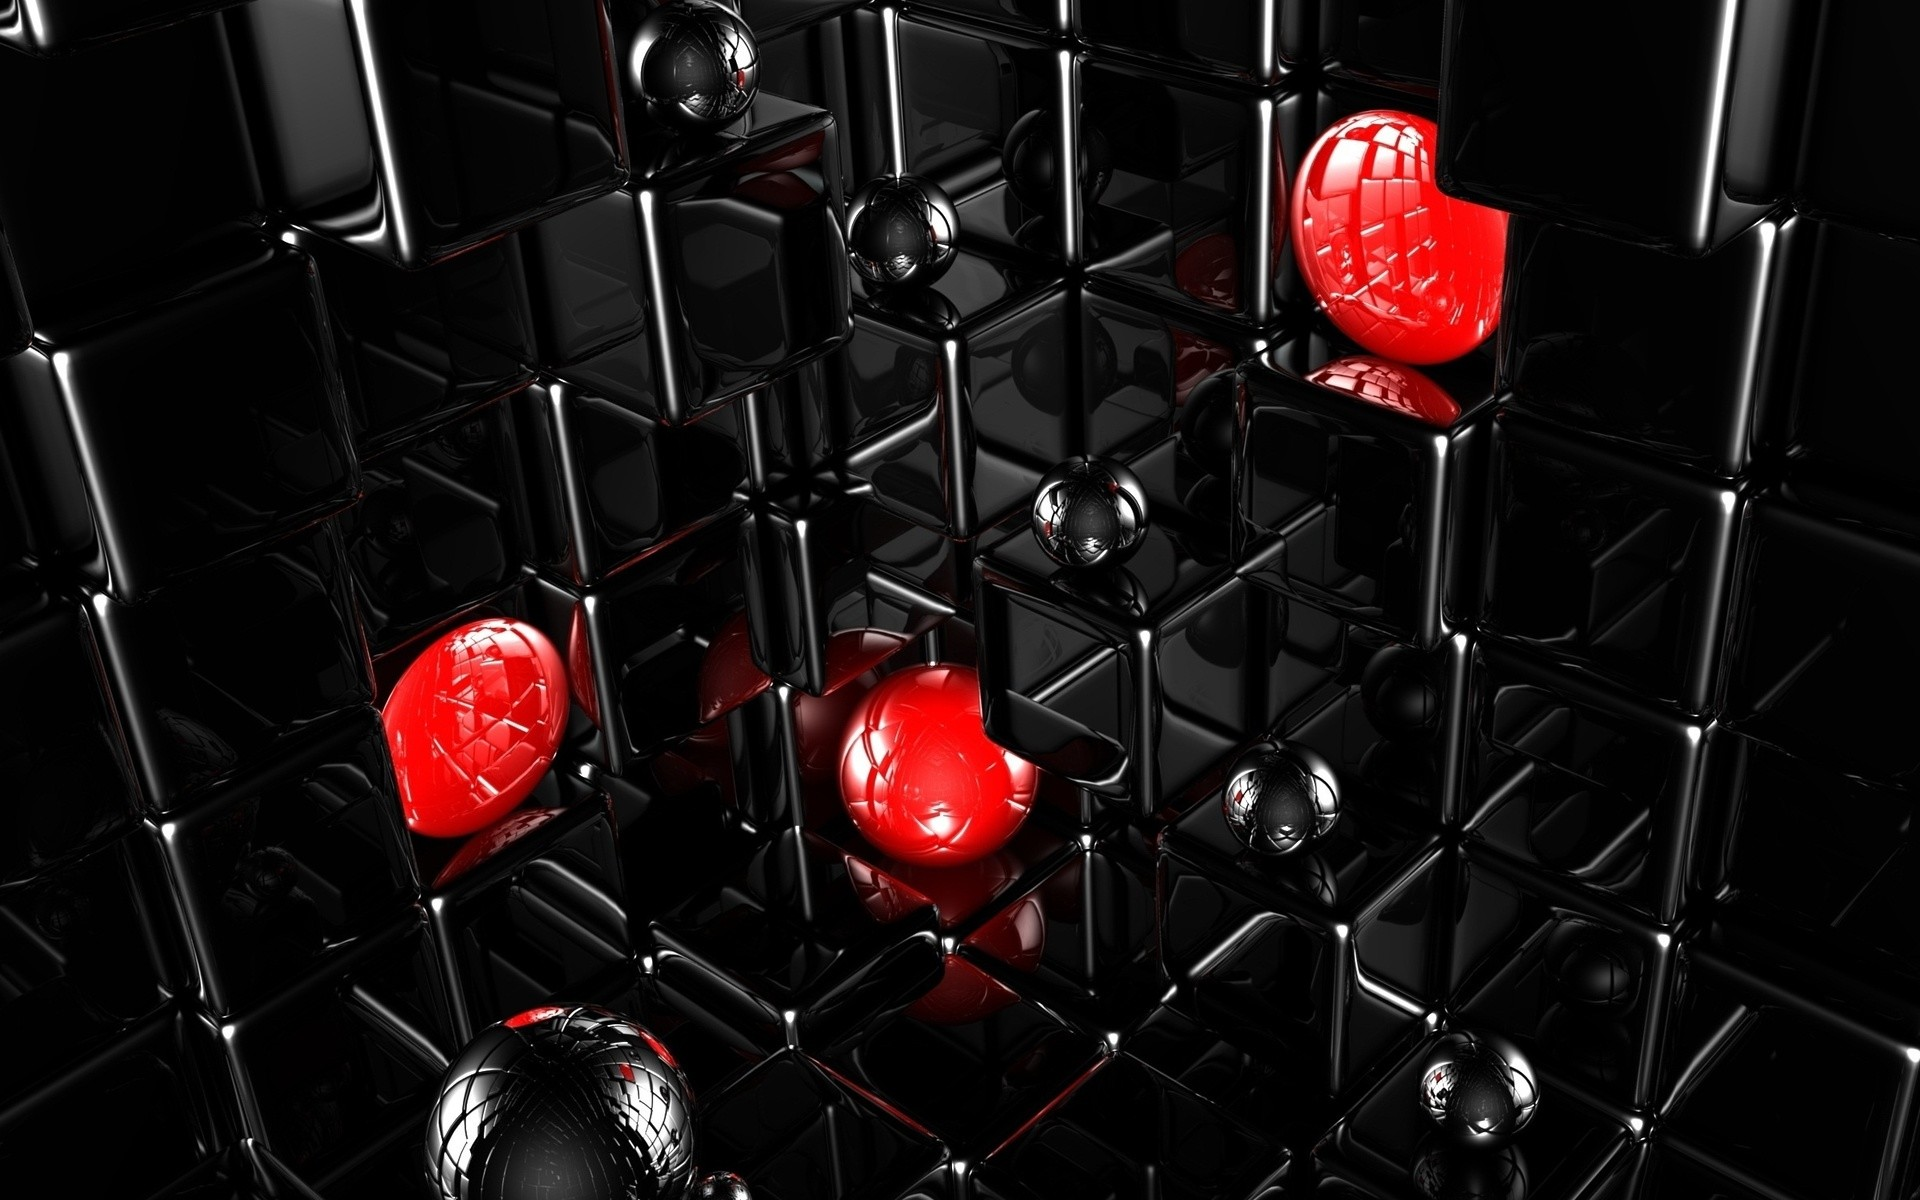 1920x1200 Add These Curated Black And Red Abstract Wallpaper Backgrounds To Your 5999